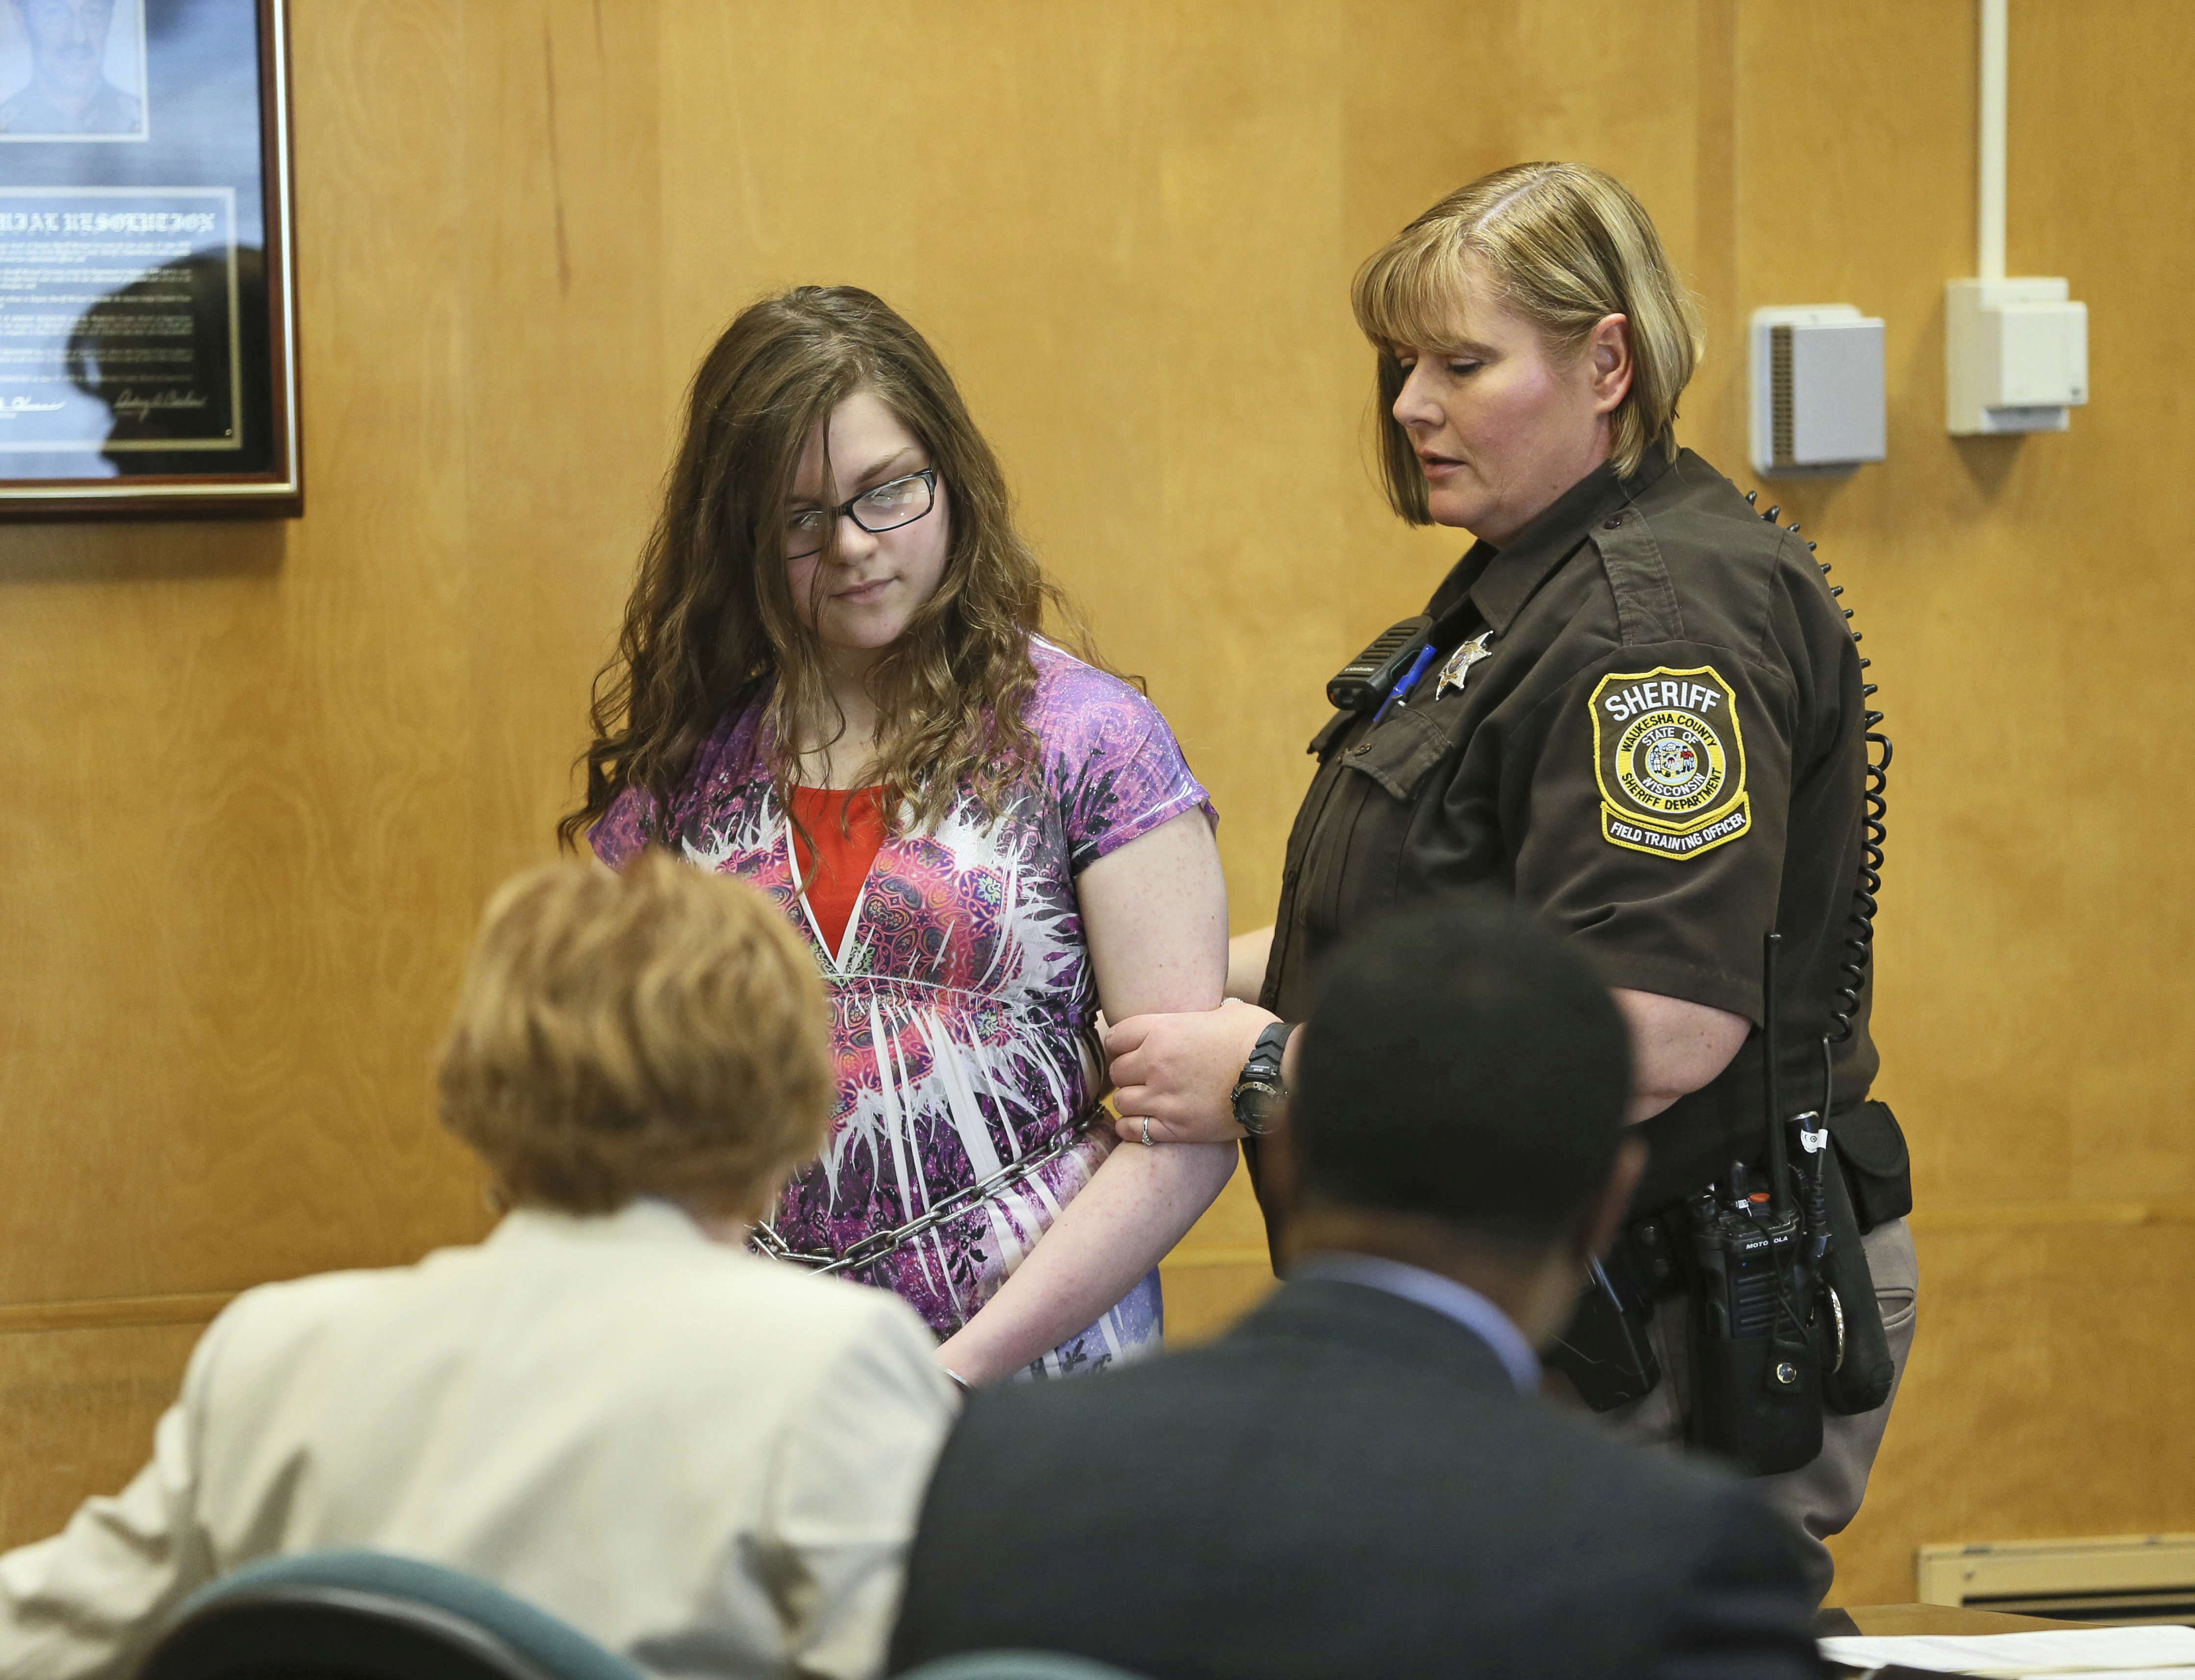 In a Monday, Feb. 20, 2017 file photo, Anissa Weier, 15, appears in court in Waukesha, Wis. Weier, one of two Wisconsin girls charged with repeatedly stabbing a classmate to impress the fictitious horror character Slender Man, pleaded guilty Aug. 21, 2017, to attempted second-degree homicide as a party to a crime, with use of a deadly weapon.